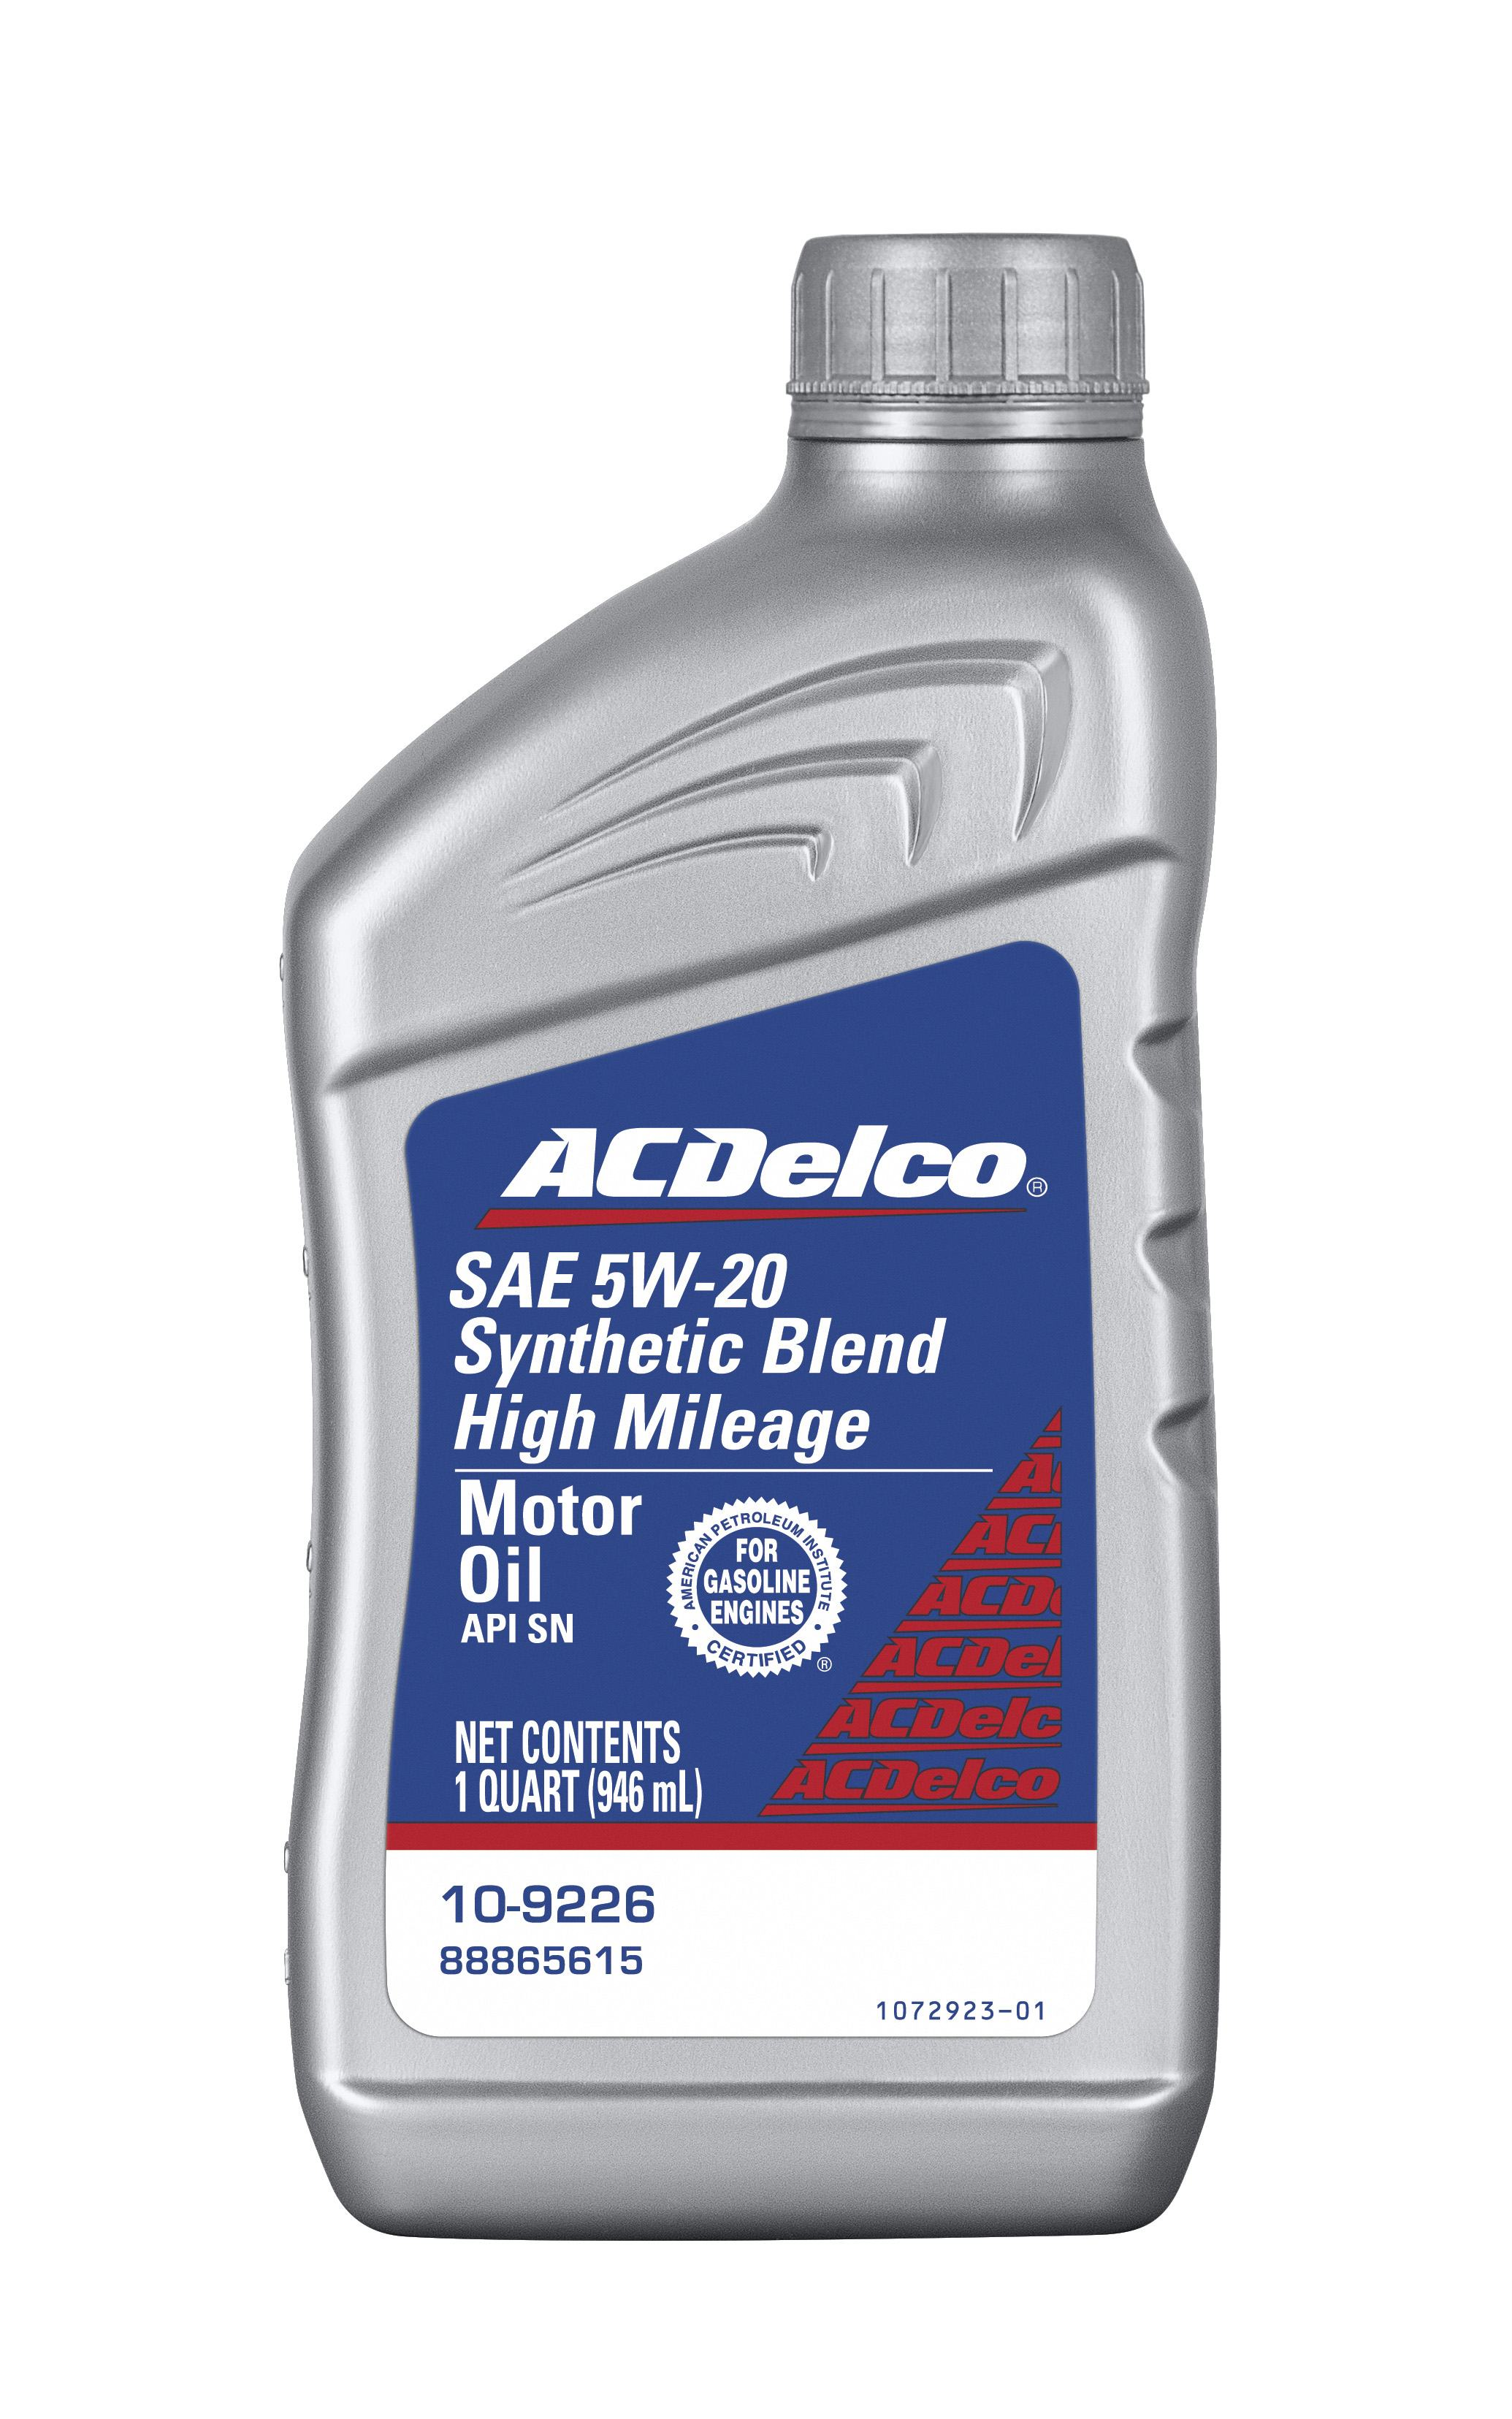 ACDELCO PROFESSIONAL - High Mileage 5W-20 Synthetic Blend Motor Oil - 1 Quart - DCC 10-9226